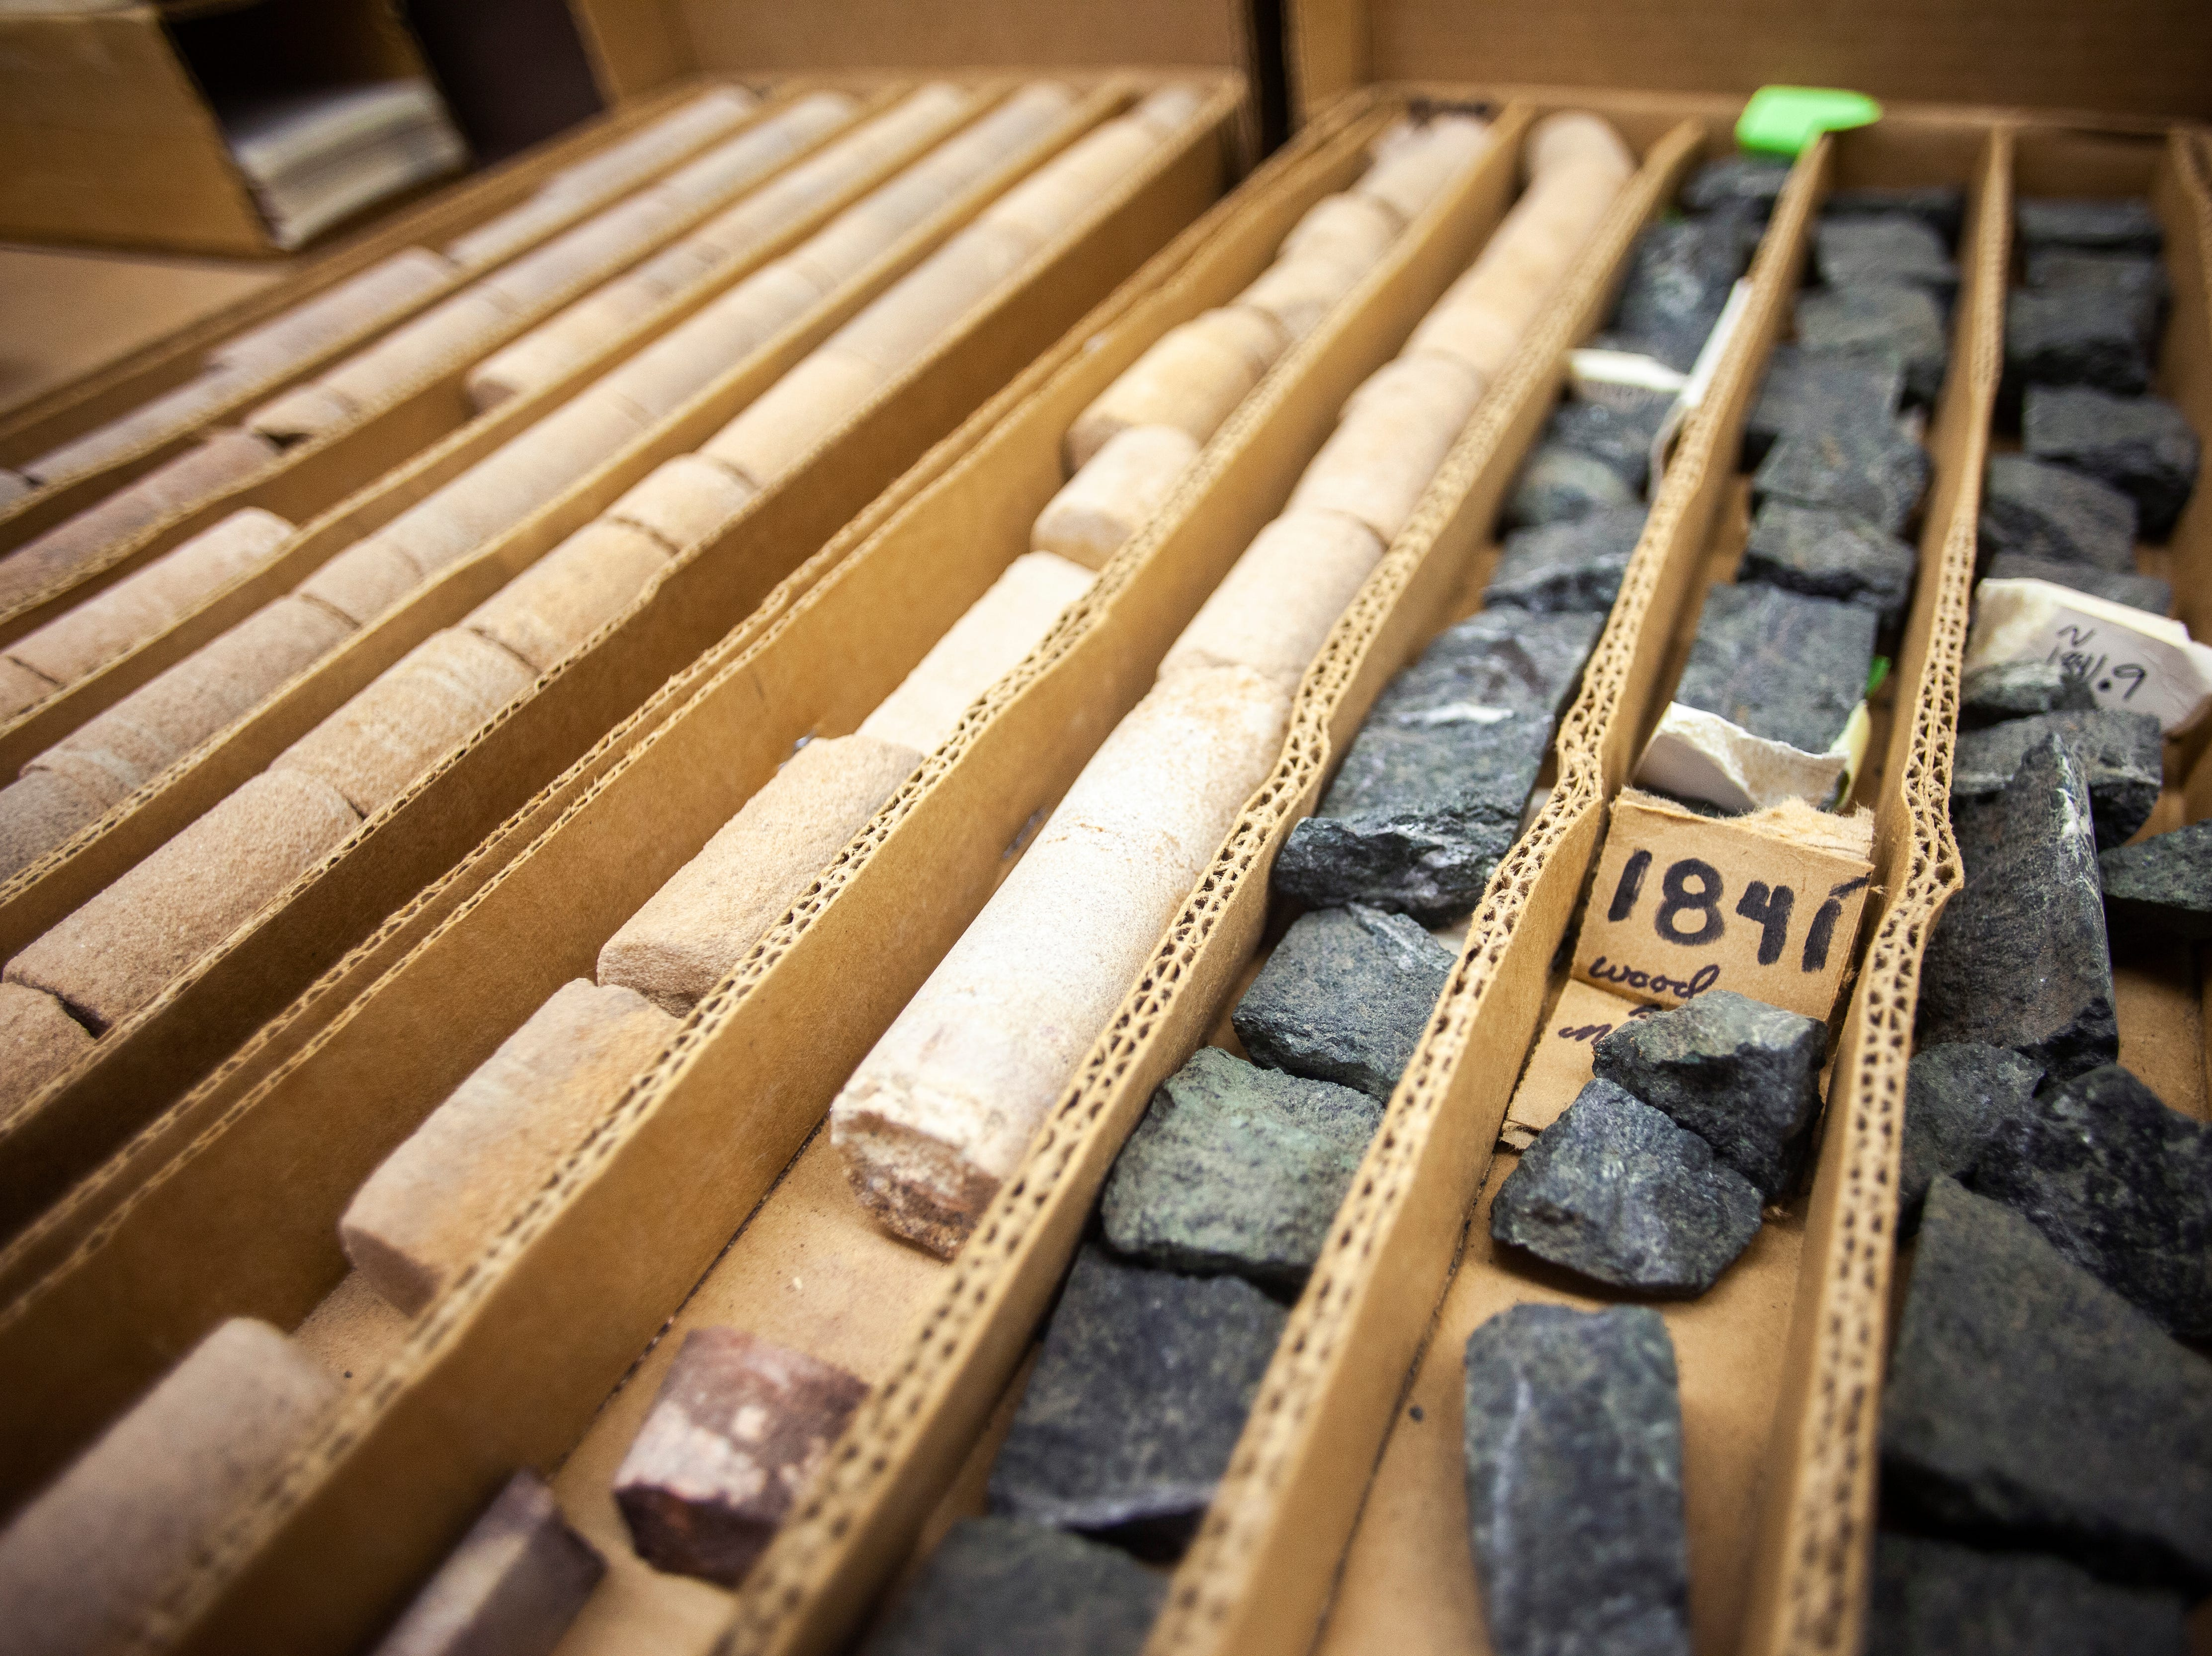 Halves of core samples from taken in northeast Iowa beginning at 1812 feet with sandstone in the upper left and transitioning into a darker, potentially mineral rich rock, on the right, on Monday, Jan. 7, 2019, at his office in the at UI Oakdale Research Campus in Coralville, Iowa.